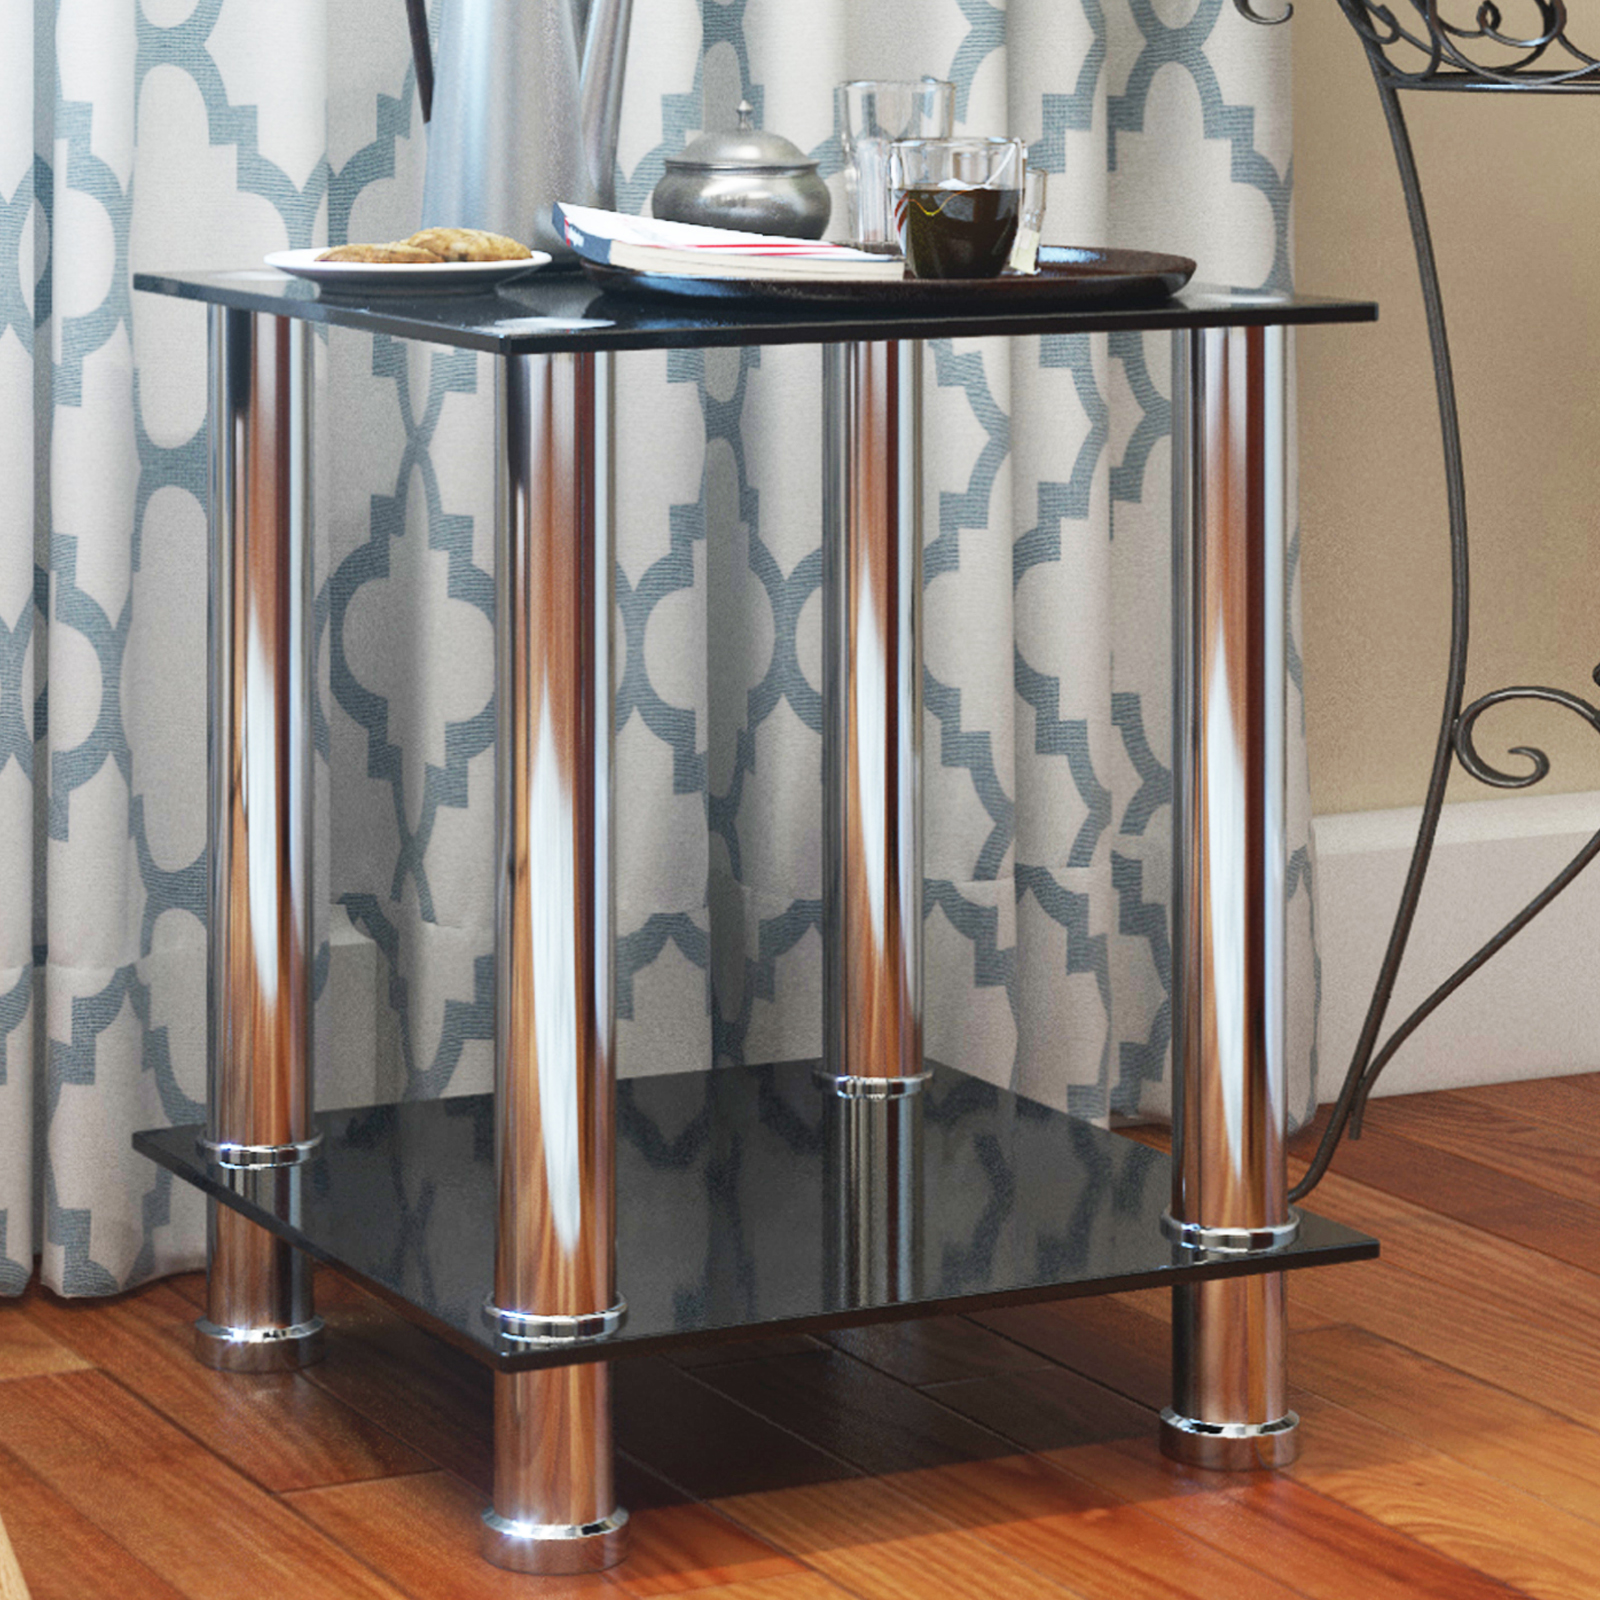 Surprising Audrey End Table Sofa Table Night Table With Tempered Glass Shelves Chrome Frame Black Glass Bralicious Painted Fabric Chair Ideas Braliciousco